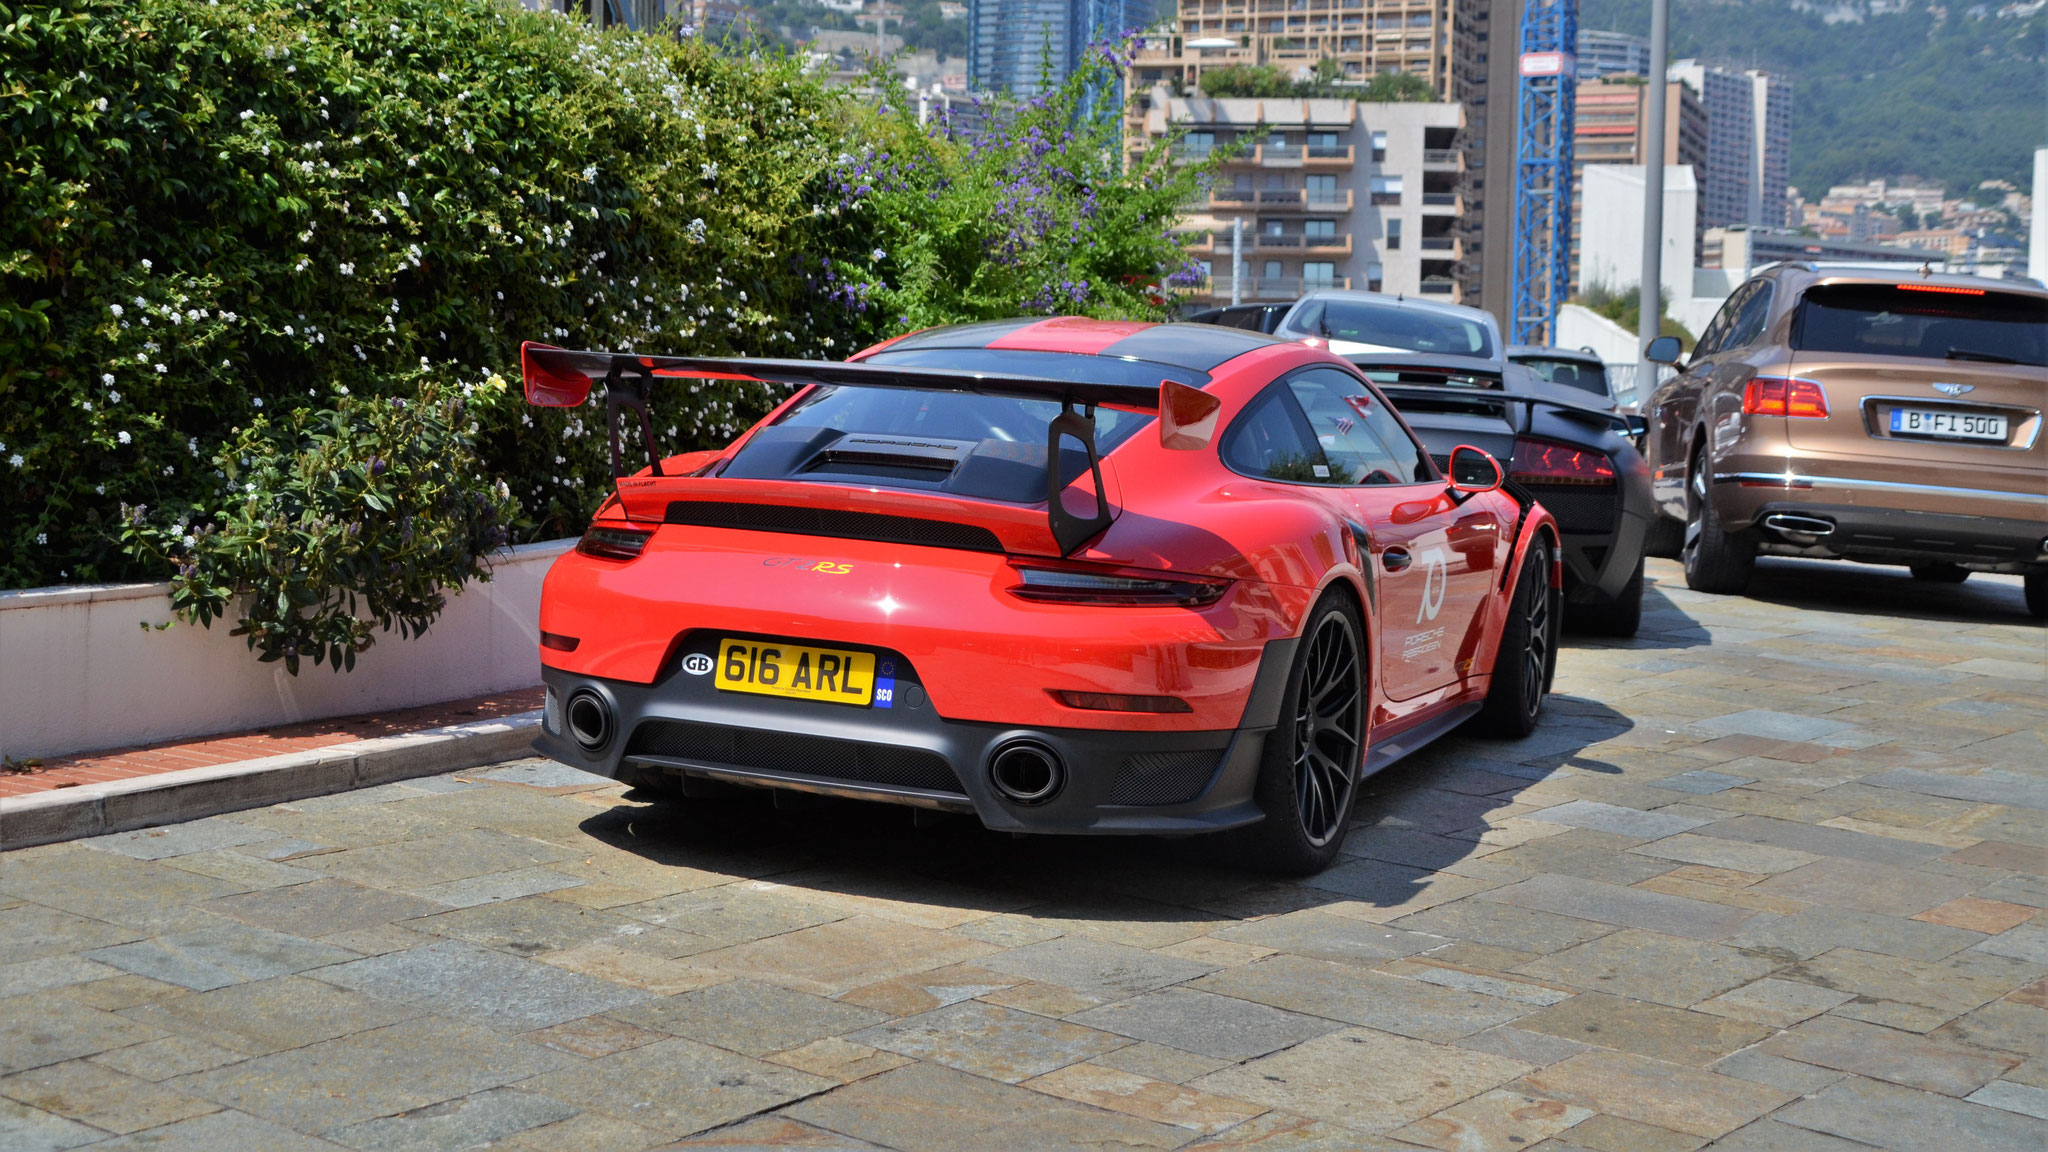 Porsche GT2 RS - 616-ARL (GB)